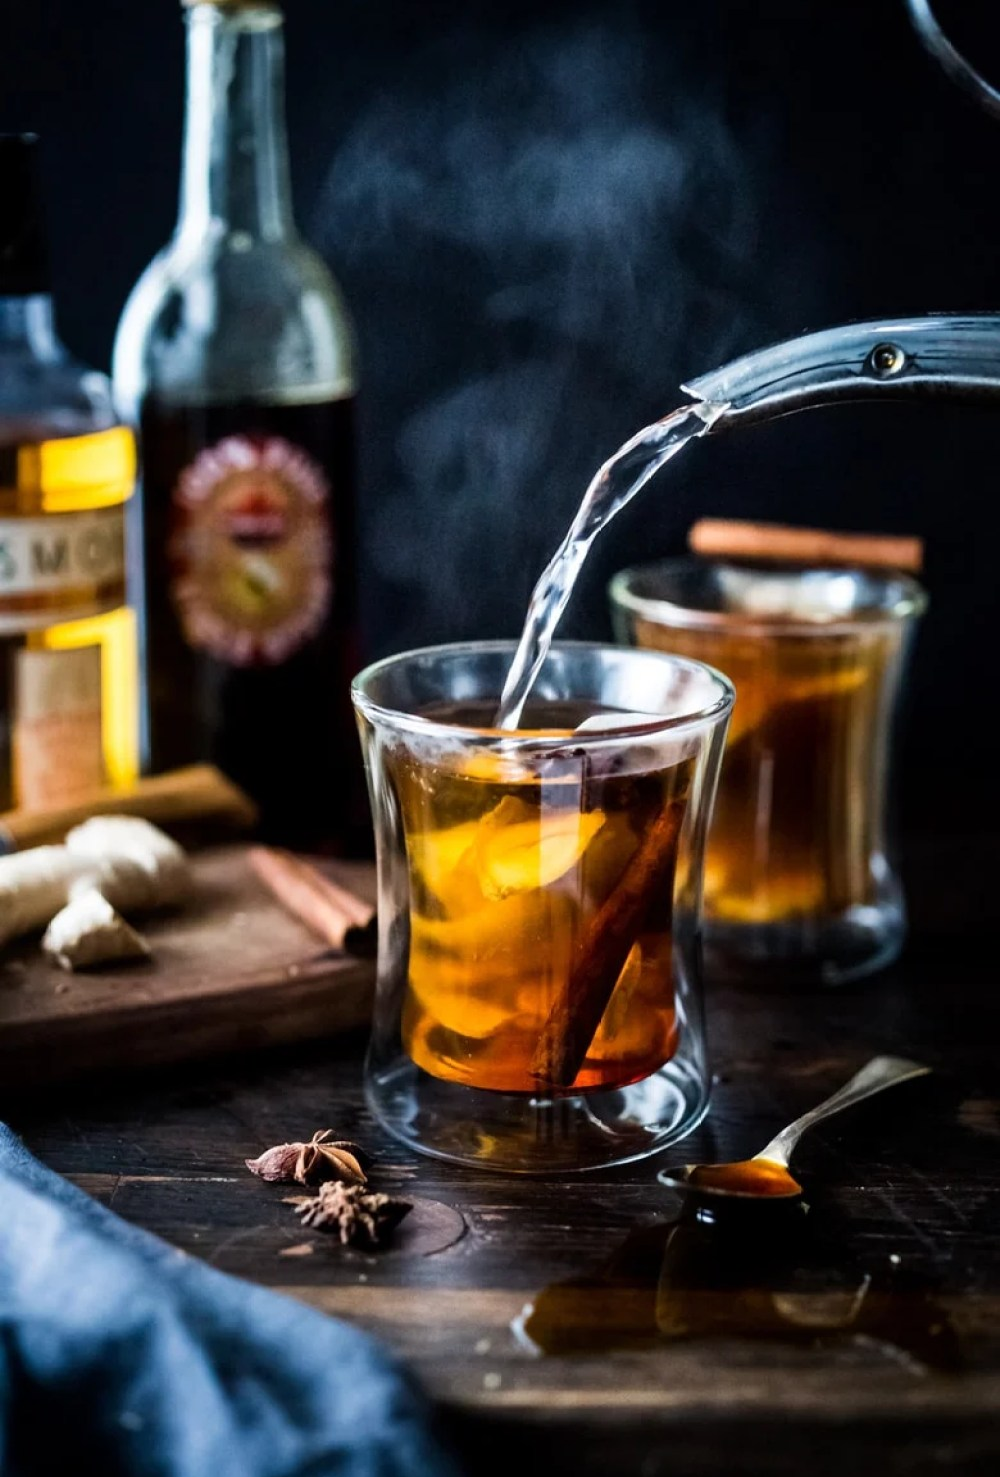 Maple Ginger Hot Toddy- made with whiskey, hot water, muddled ginger, whole spices and lemon- this winter sipper soothes a sore throat and warms the body. | www.feastingathome.com